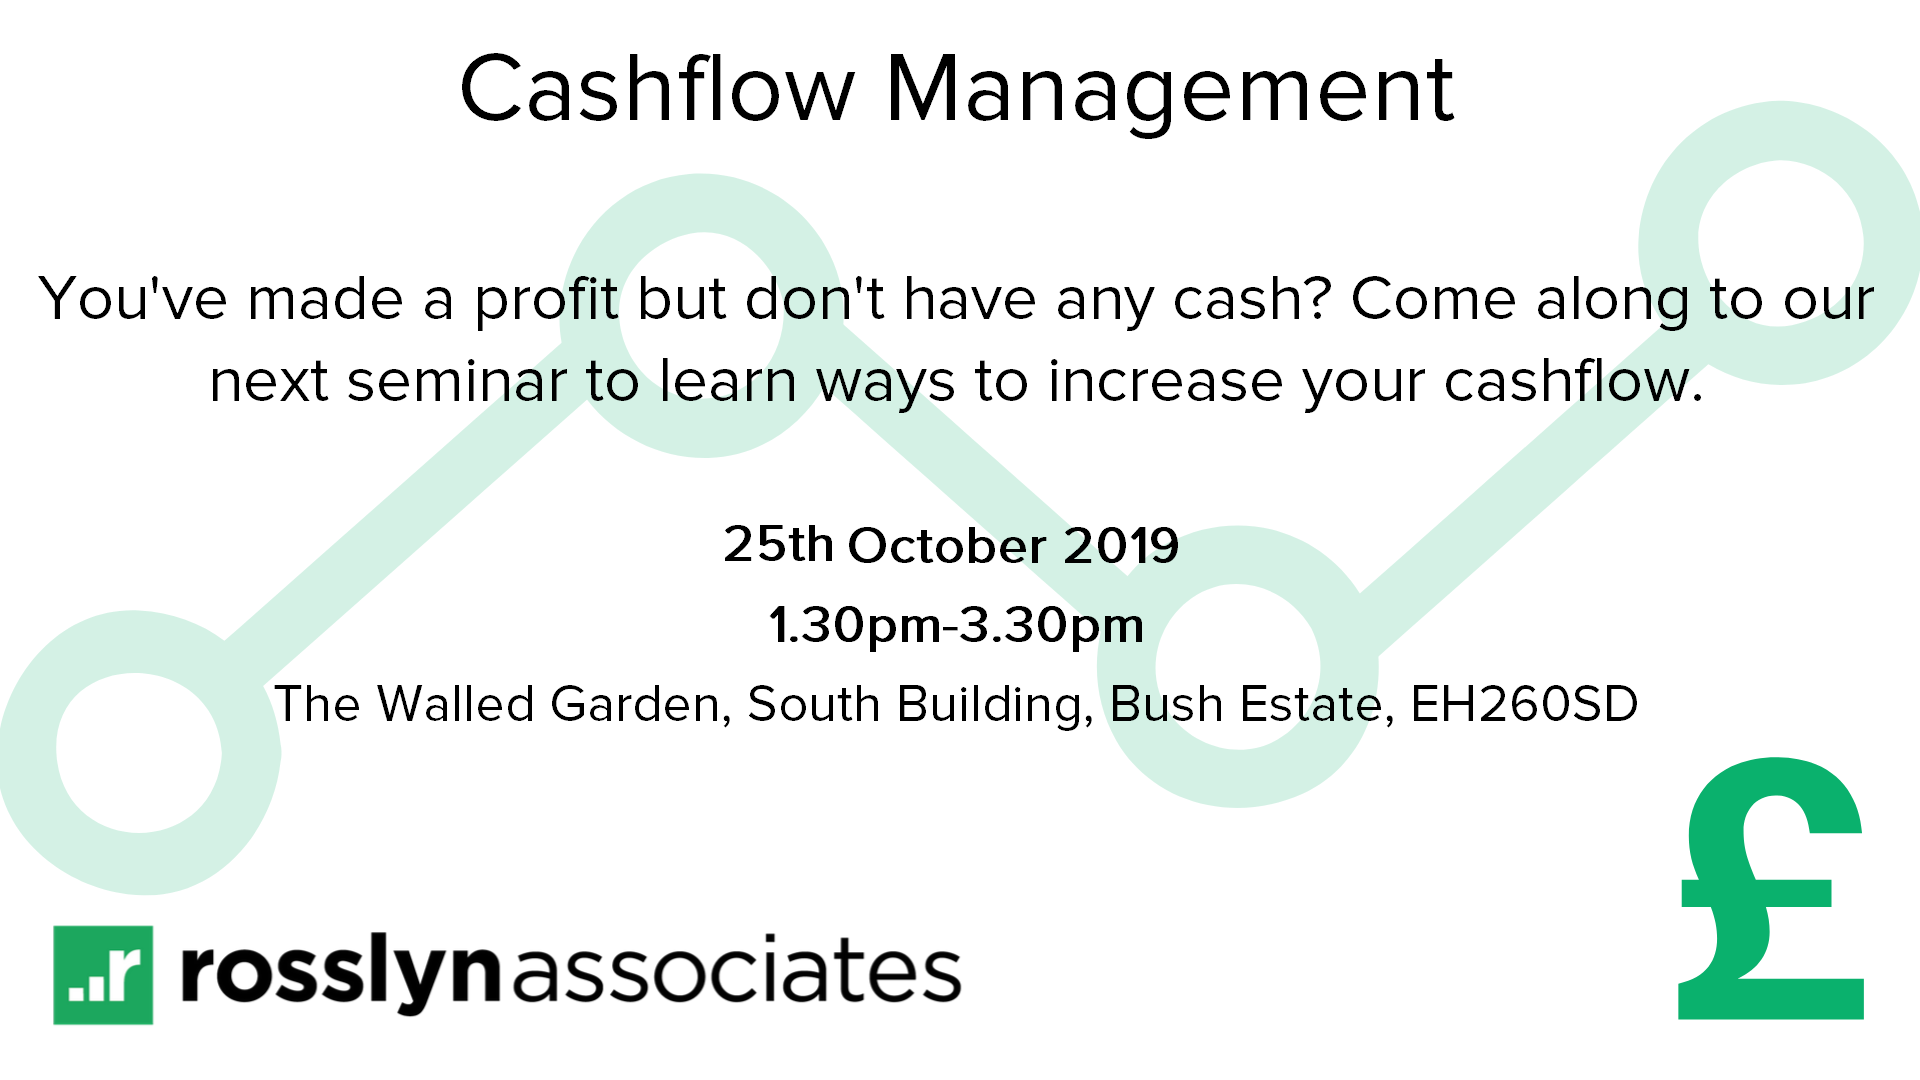 Cashflow Management Seminar